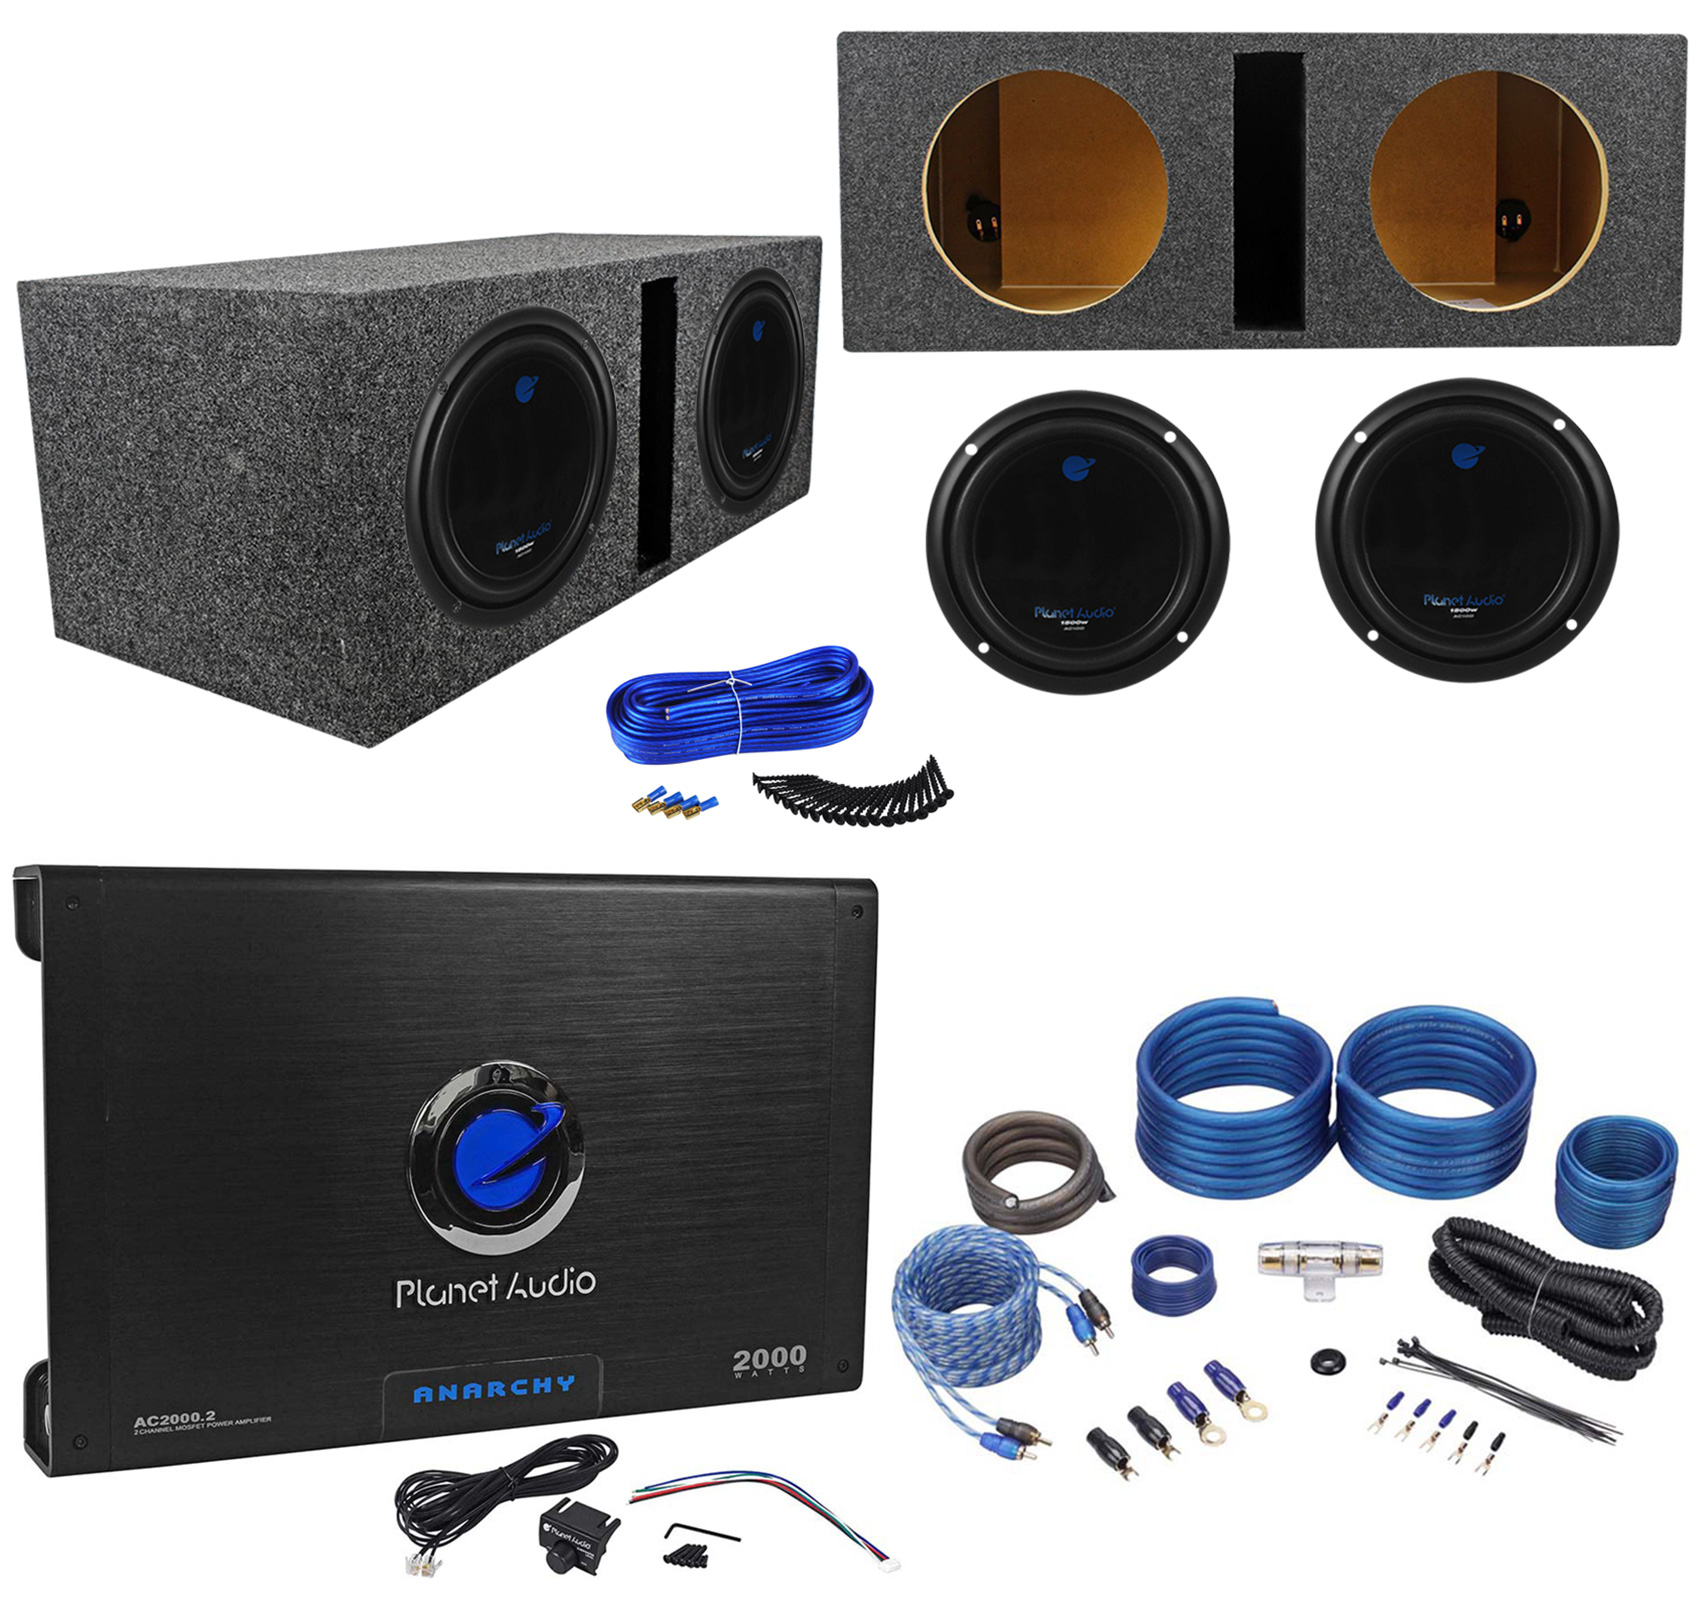 hight resolution of 2 planet audio ac10d 10 3000w subwoofers vented sub box 2 ch amplifier amp kit